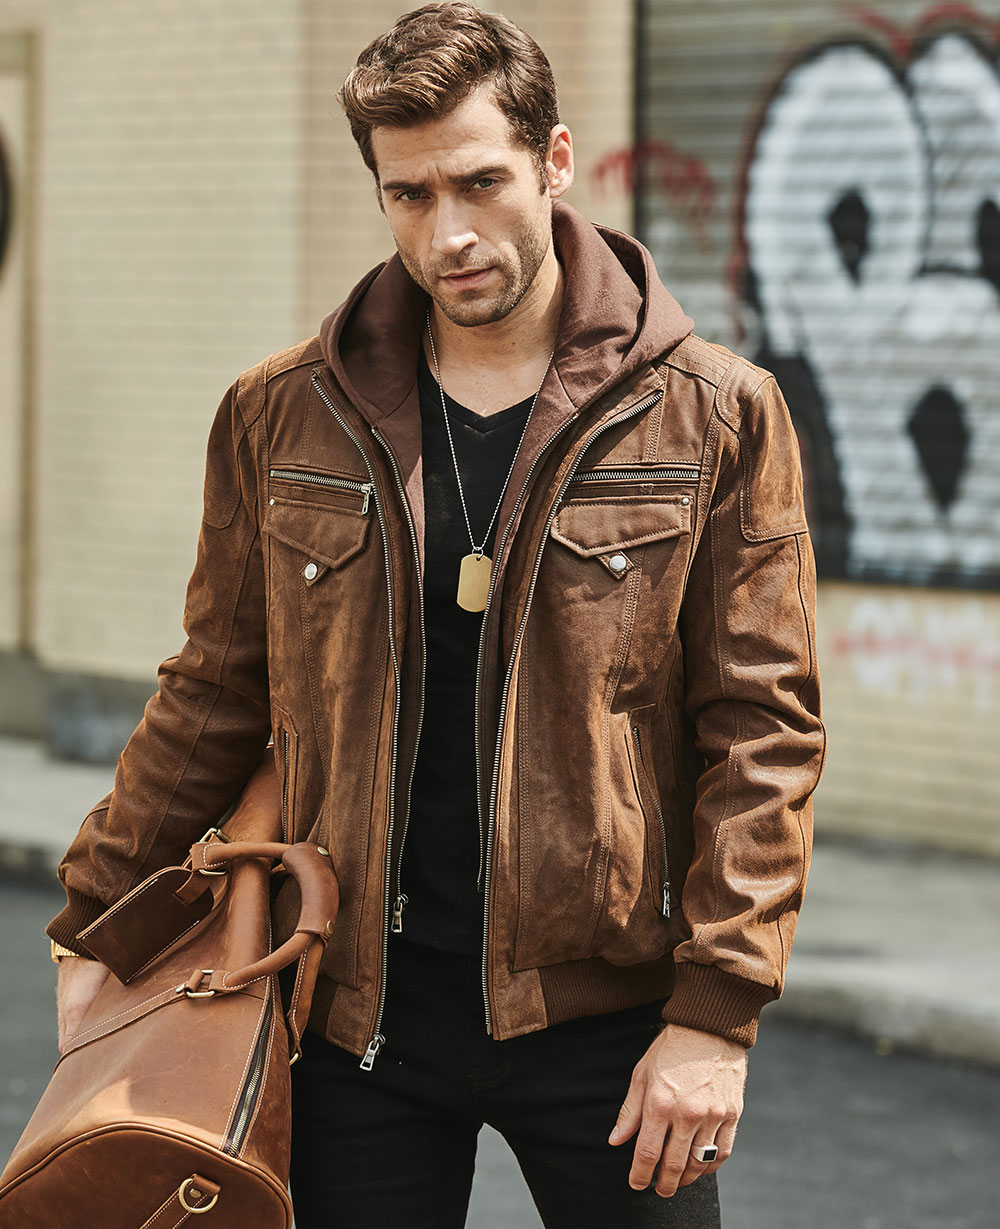 Hce0073c748a246c3a191079b9f34f6b7C FLAVOR New Men's Real Leather Jacket with Removable Hood Brown Jacket Genuine Leather Warm Coat For Men